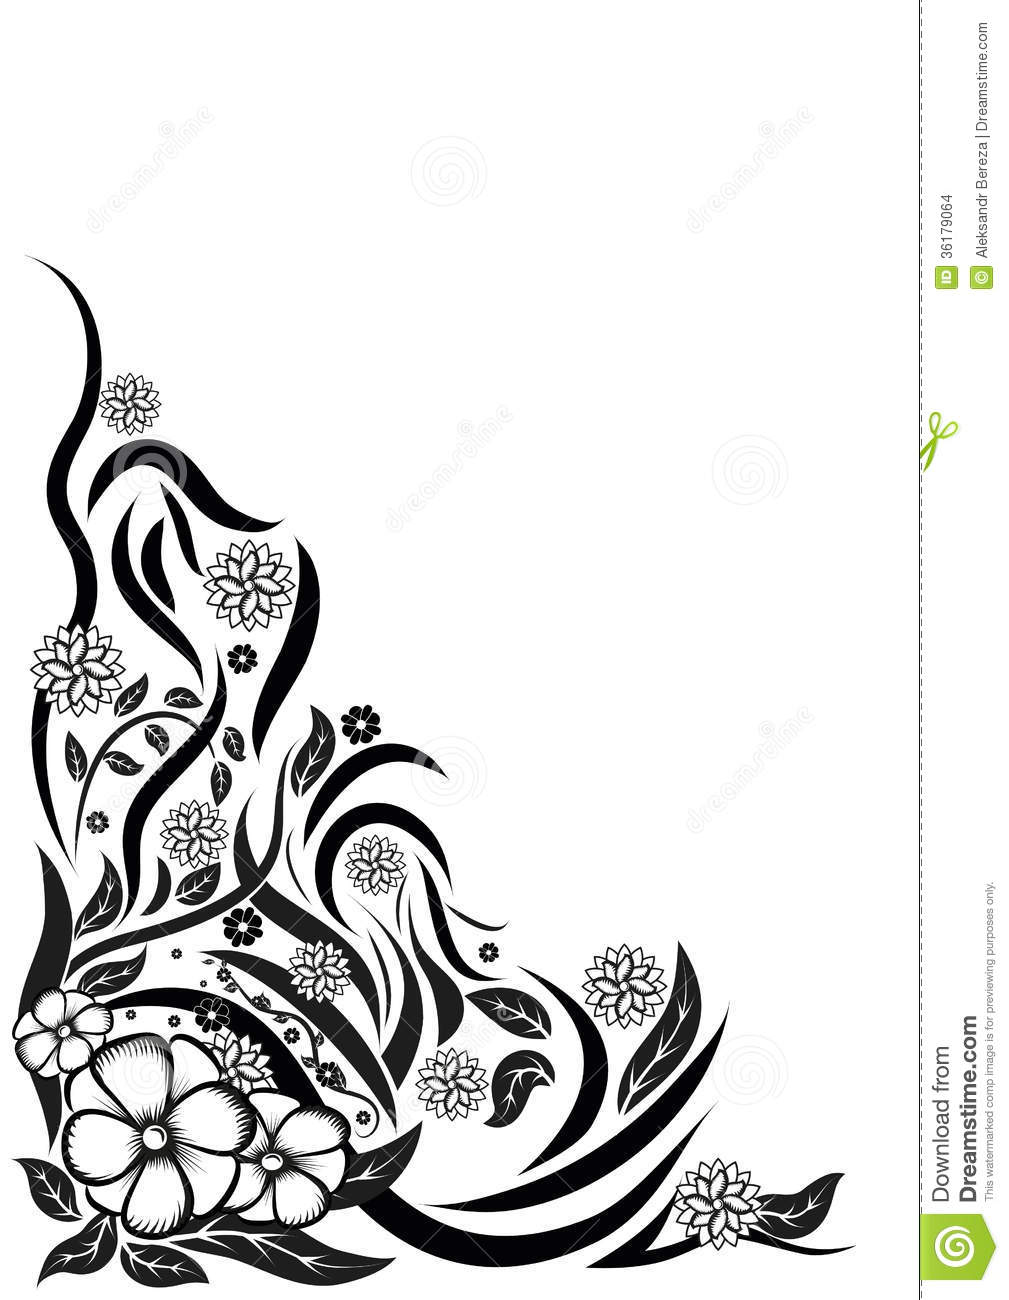 Graphics flowers graphic library library Flowers Pattern Stock Images - Image: 36179064 graphic library library